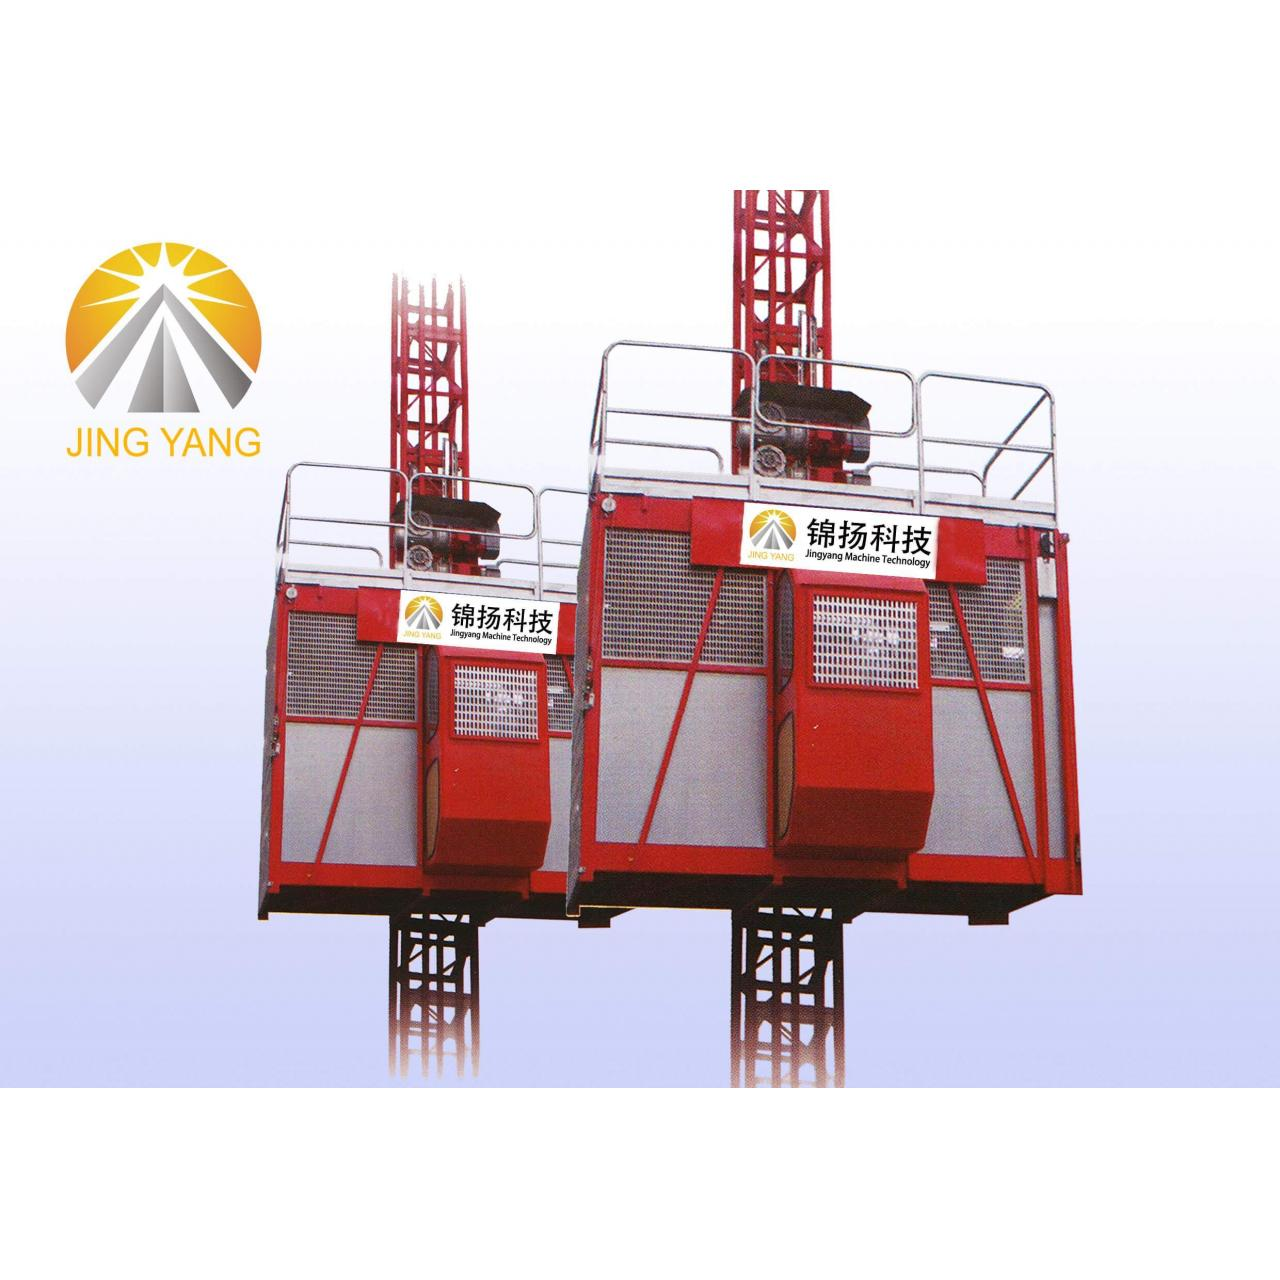 Buy cheap GJJ passenger hoist GJJ Ladder material hoist(GJJ patent) from wholesalers